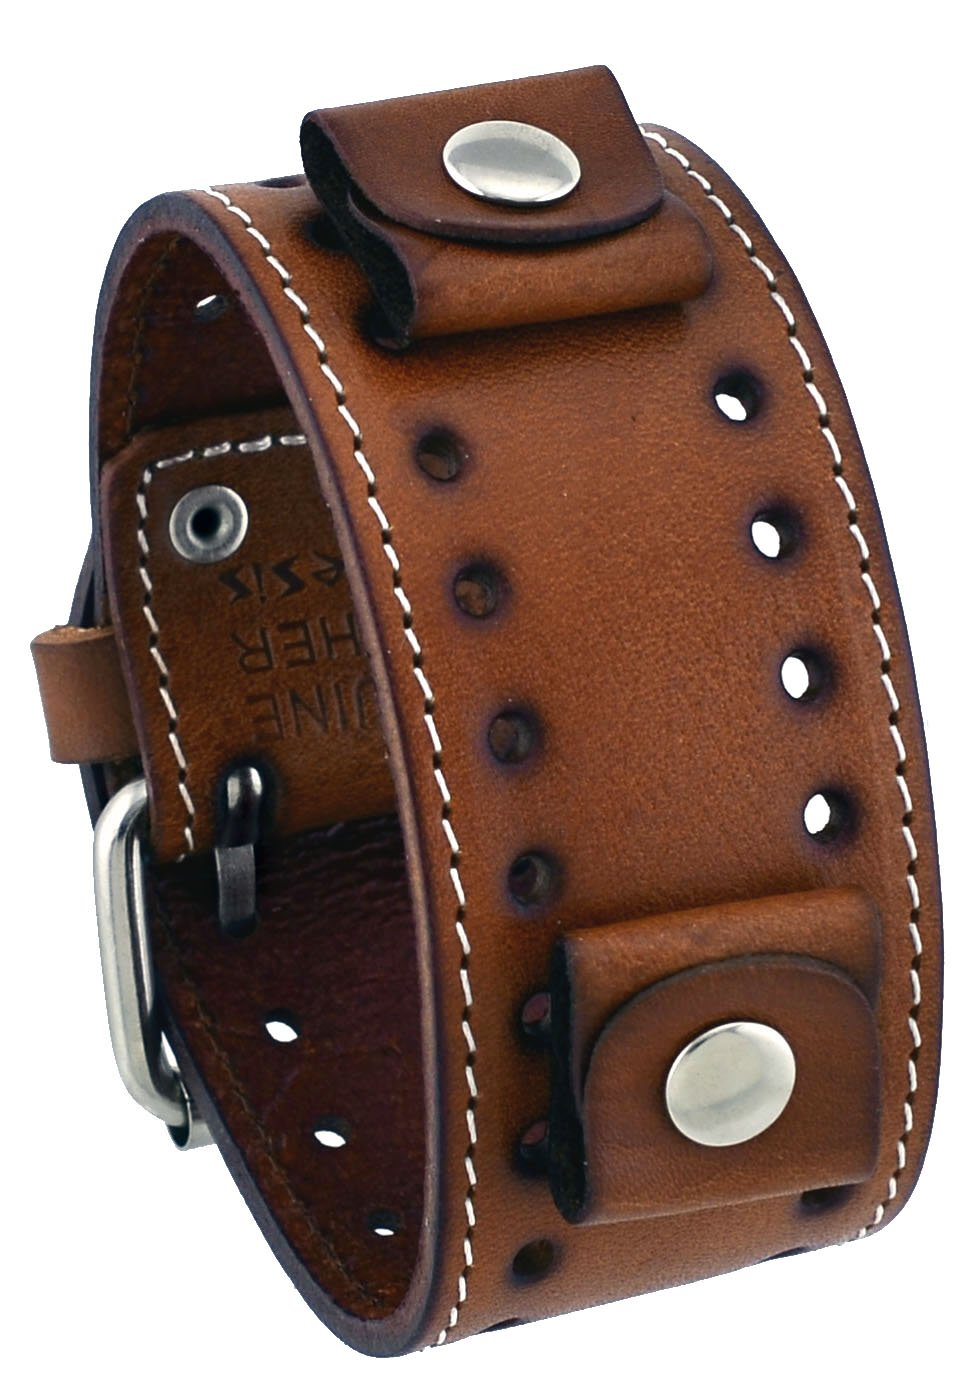 Nemesis #STH-B Brown Wide Leather Cuff Wrist Watch Band by Nemesis